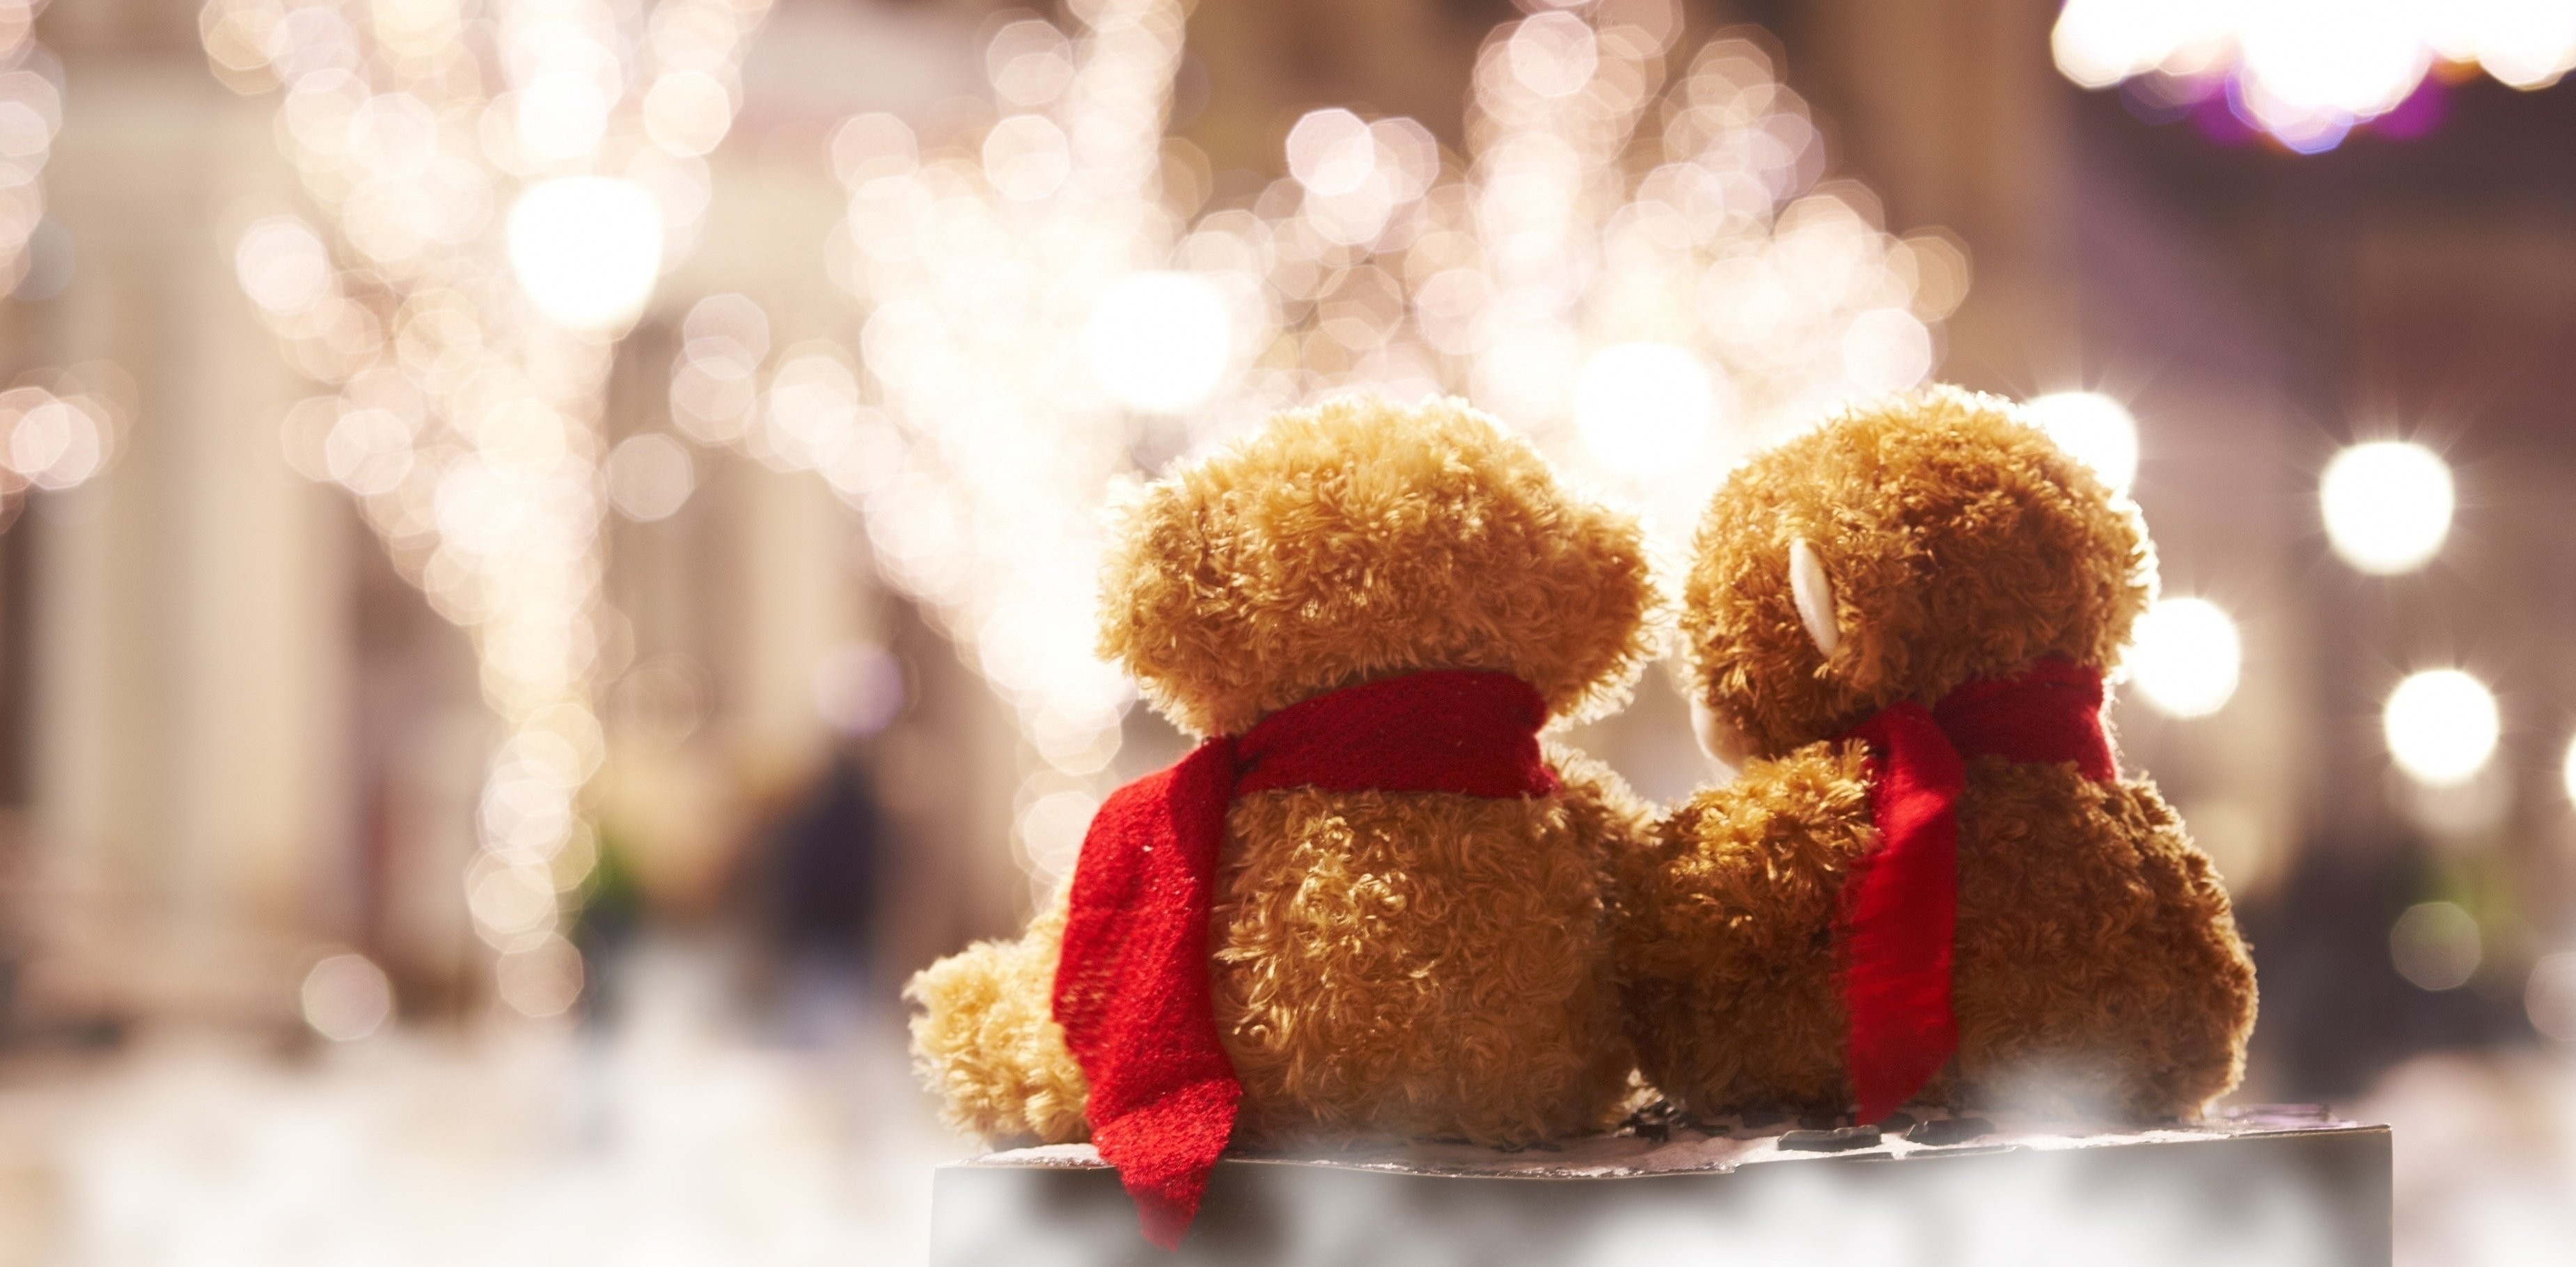 Teddy Bear Love Wallpaper 45 Pictures